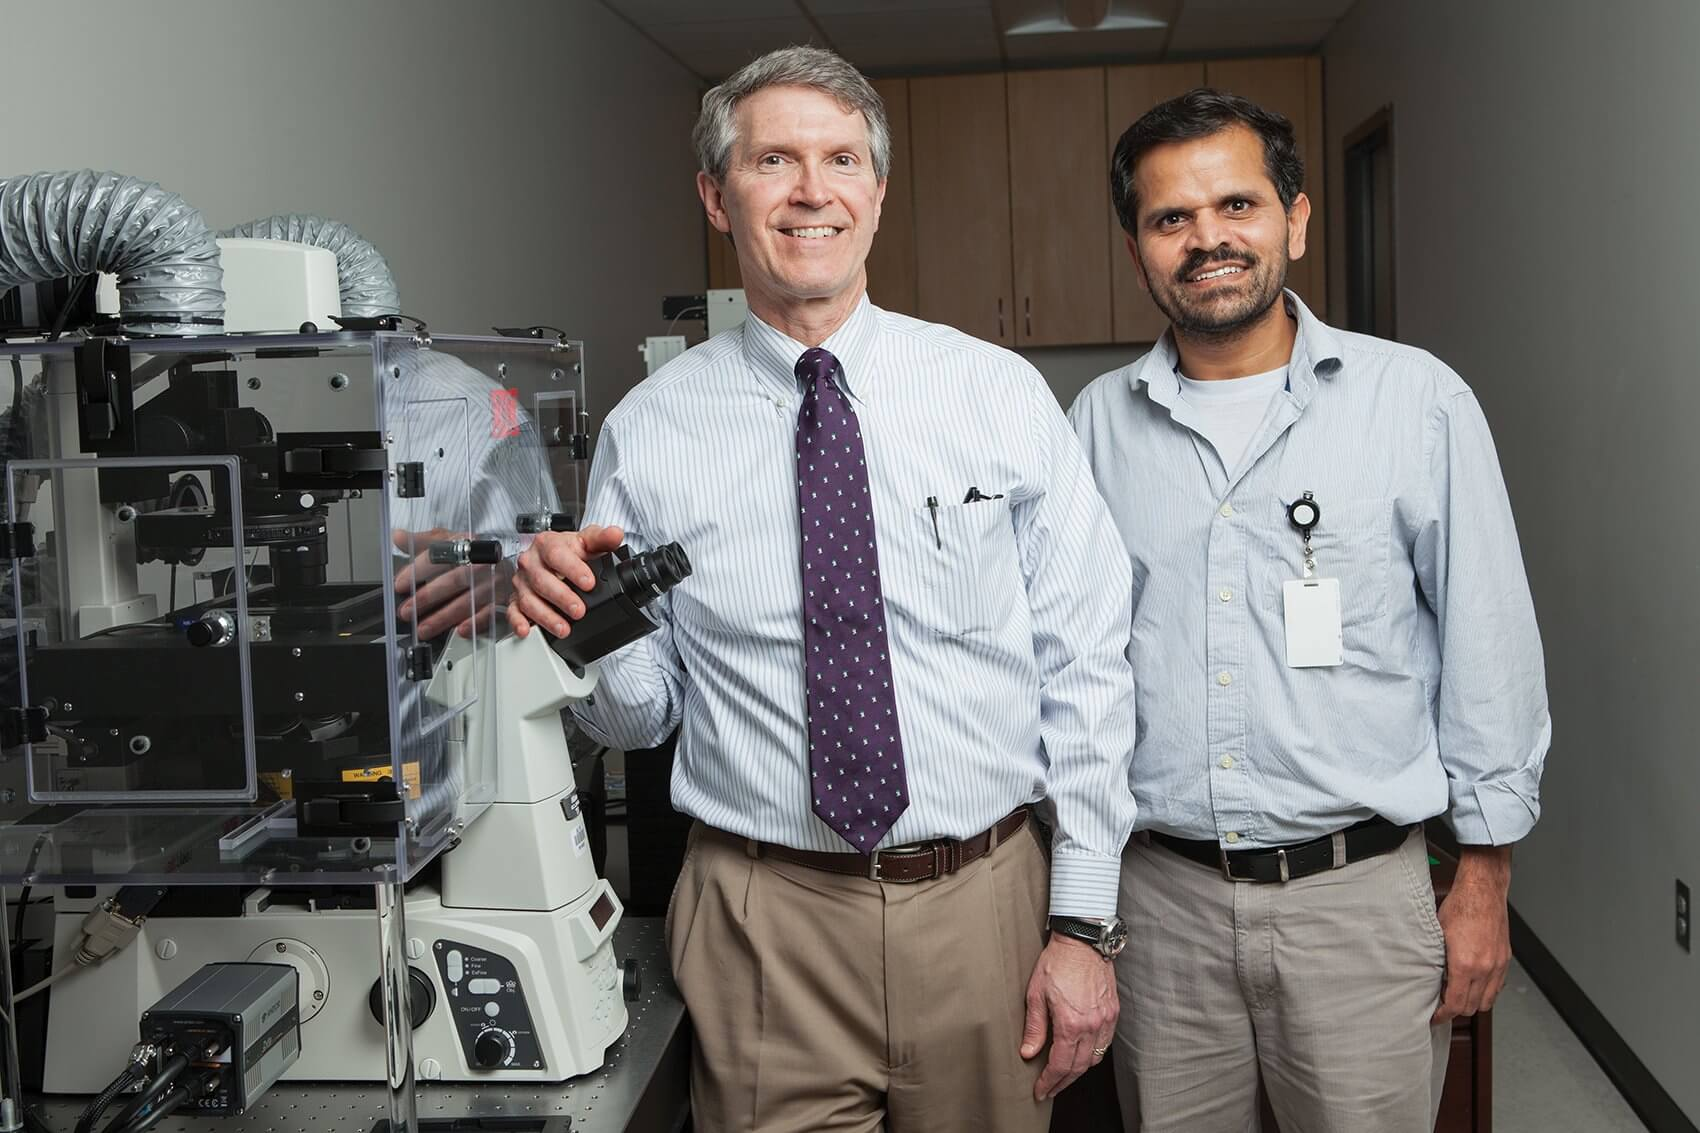 Stephen C. Pflugfelder, M.D., and Ghanashyam Acharya, Ph.D., are leveraging their combined expertise to reinvent the way that eye medication is administered.